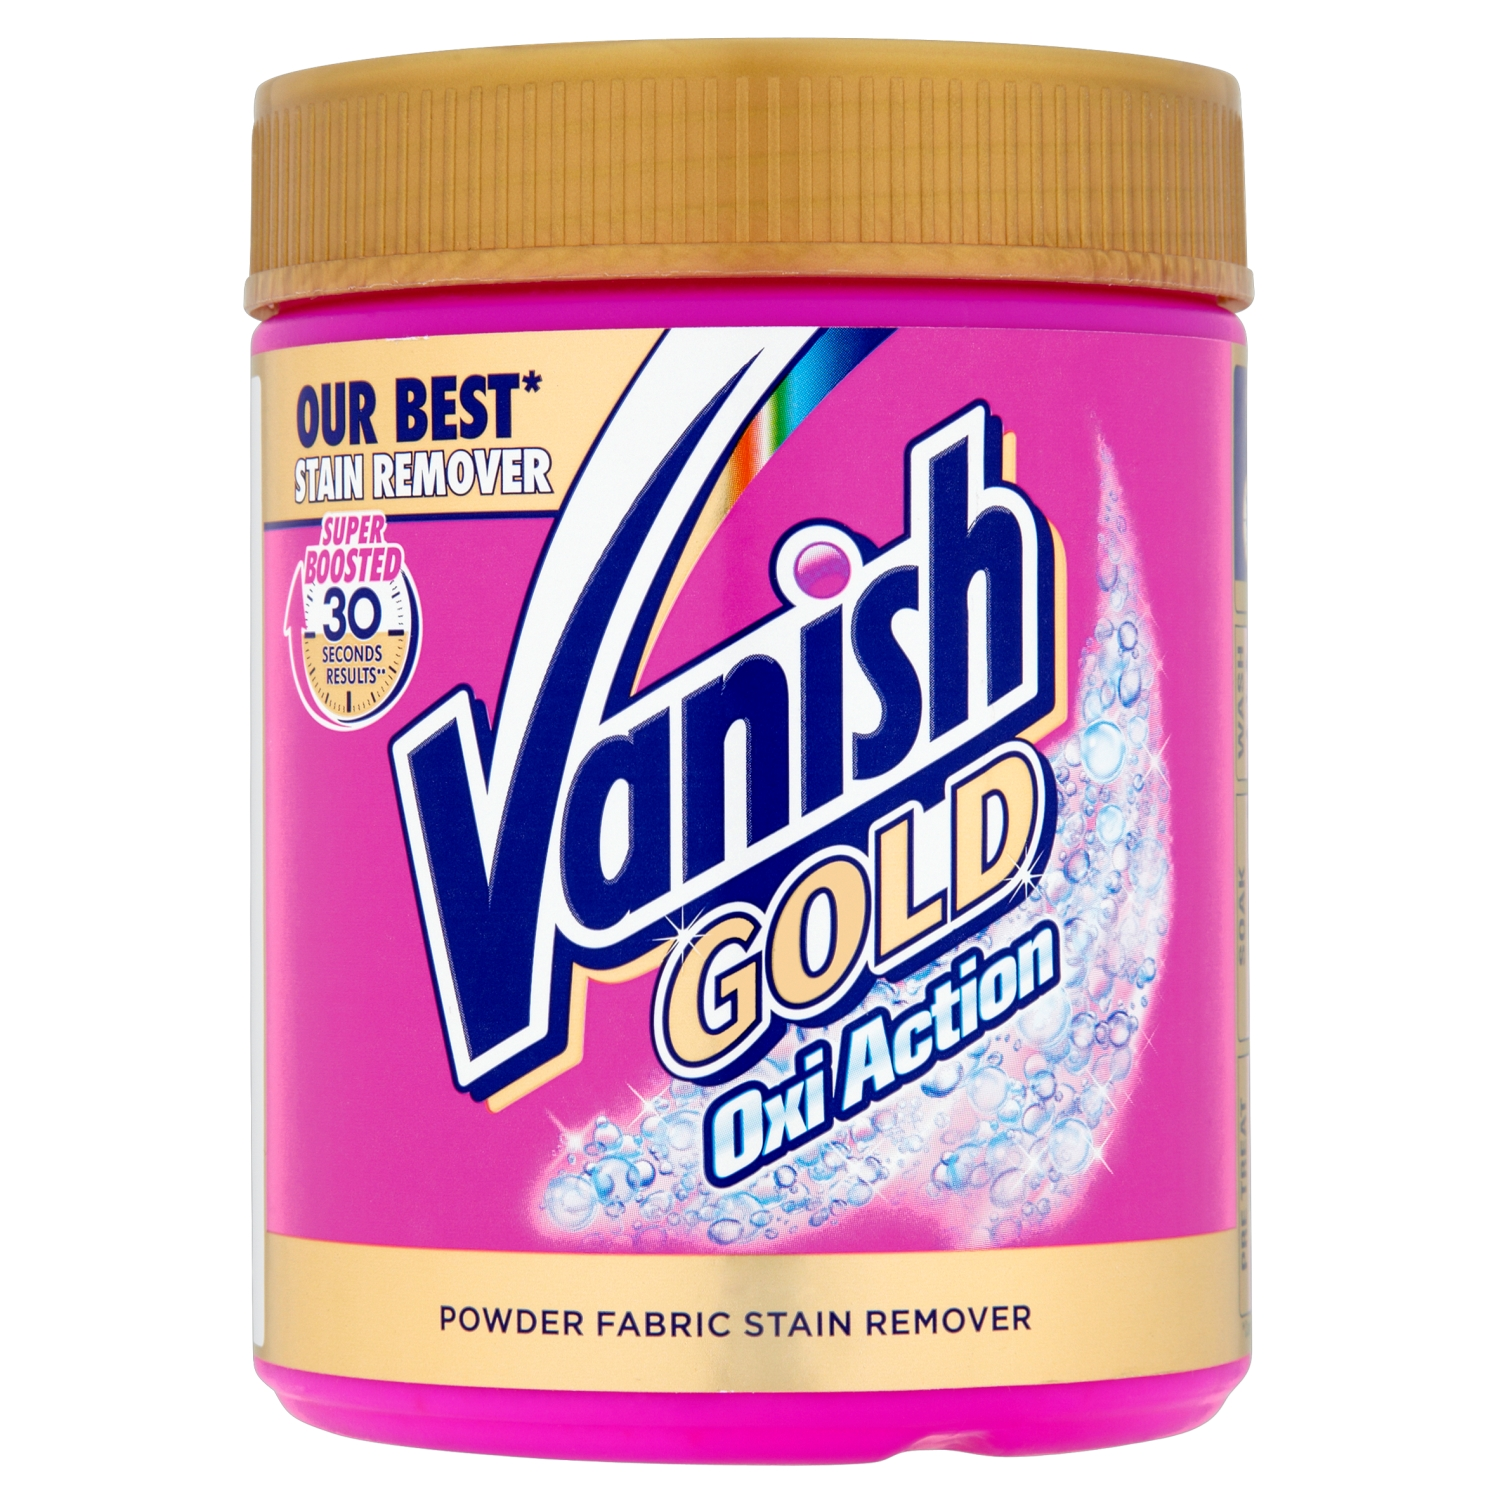 Vanish Gold Oxi Action Powder